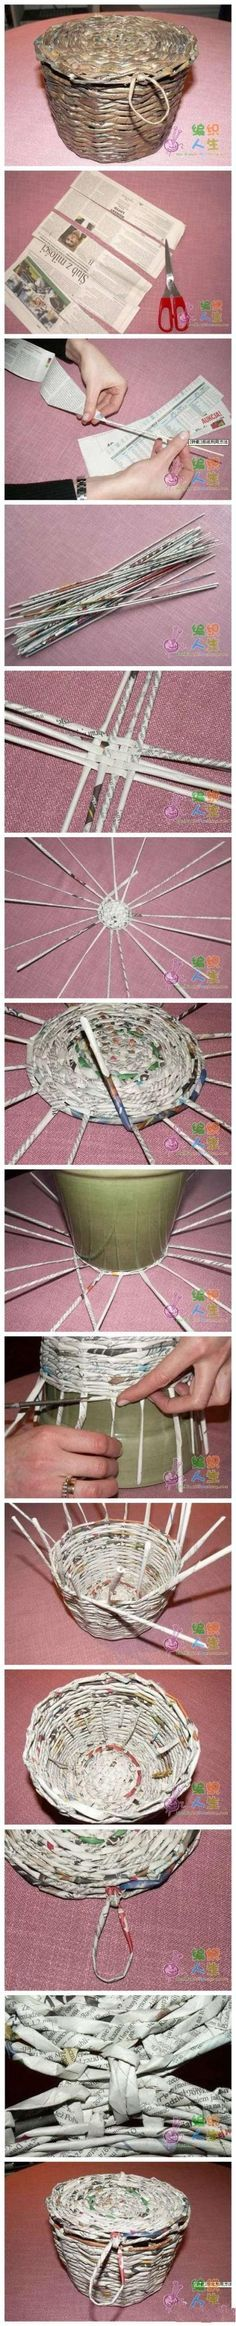 DIY newspaper basket making DIY Weaving DIY Crafts